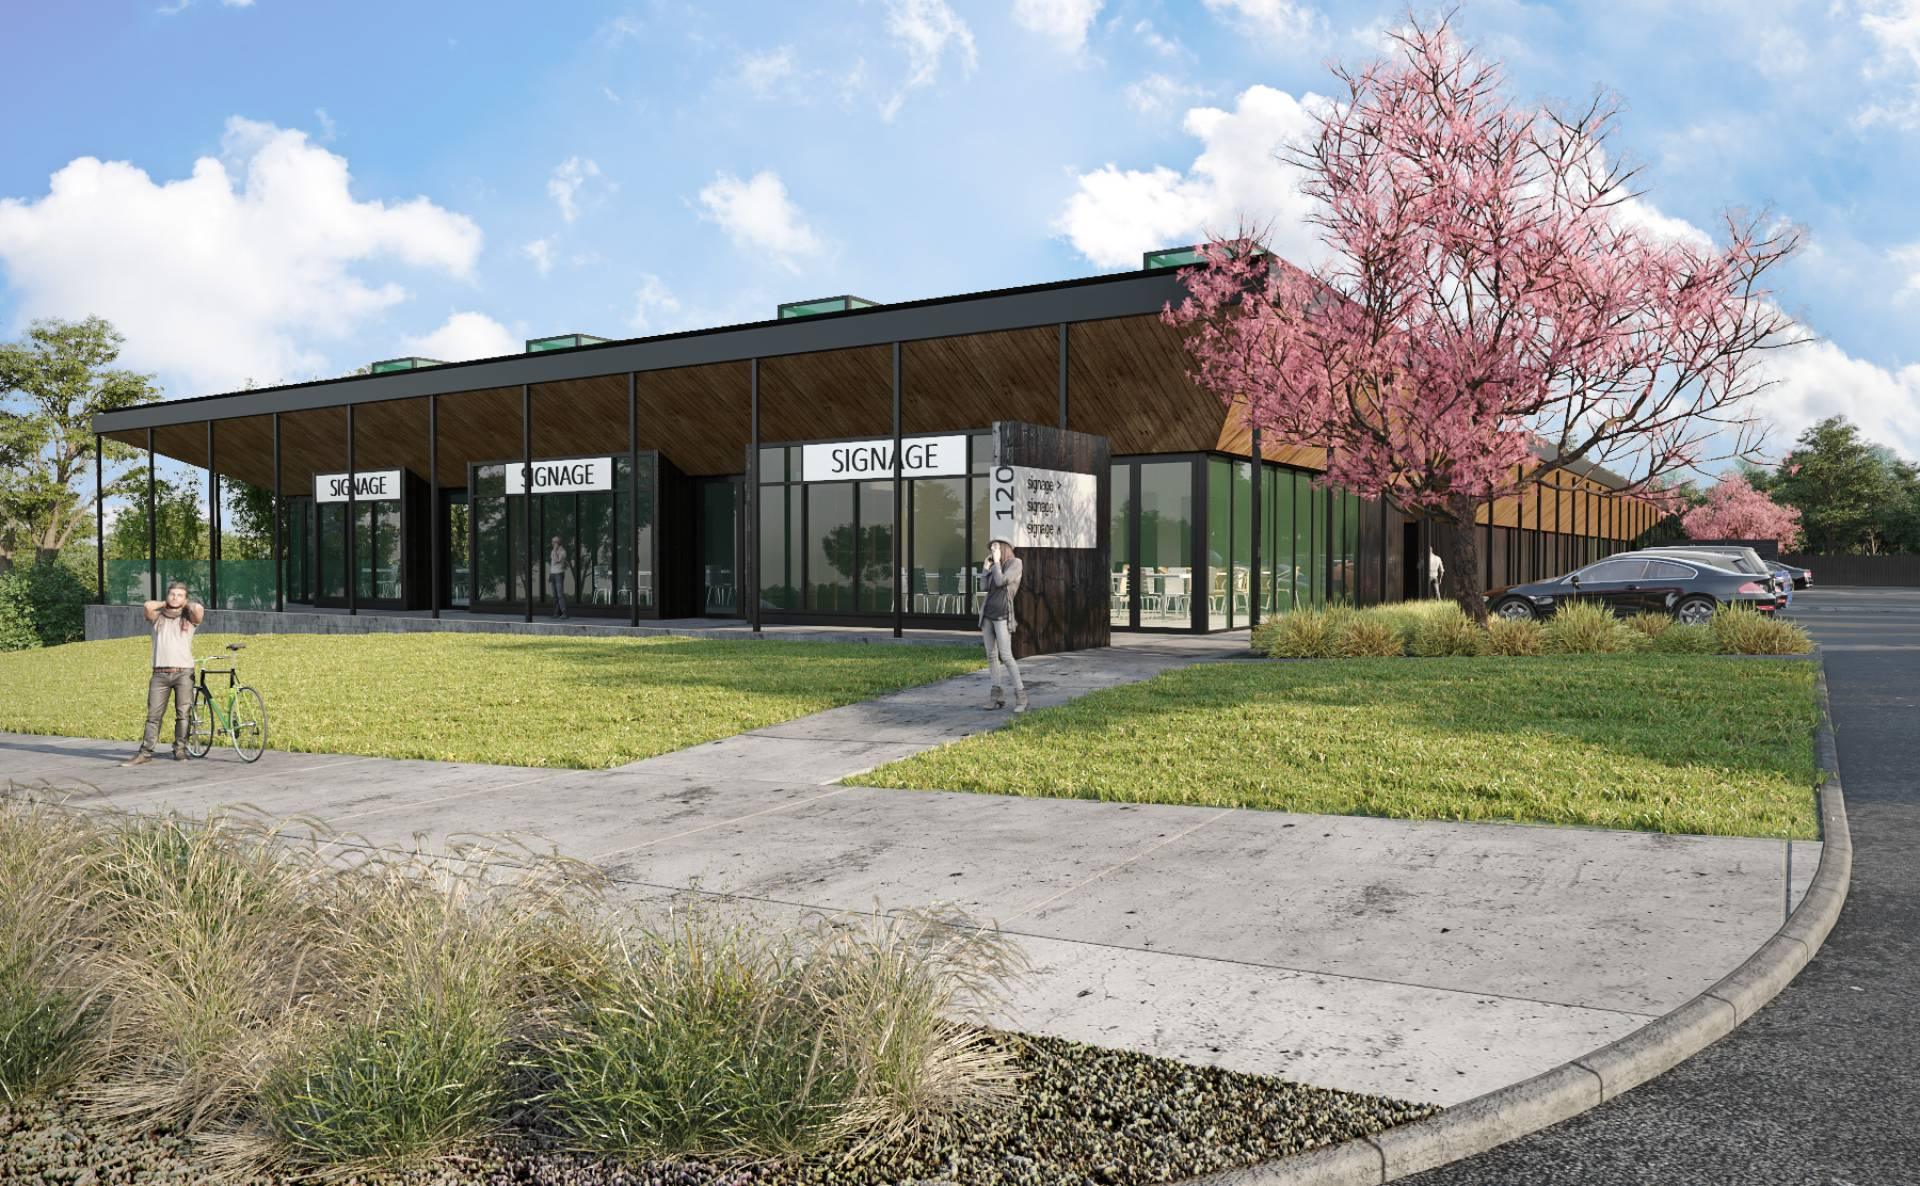 Westgate Childcare by Herbst Maxcey Metropolitan Architects